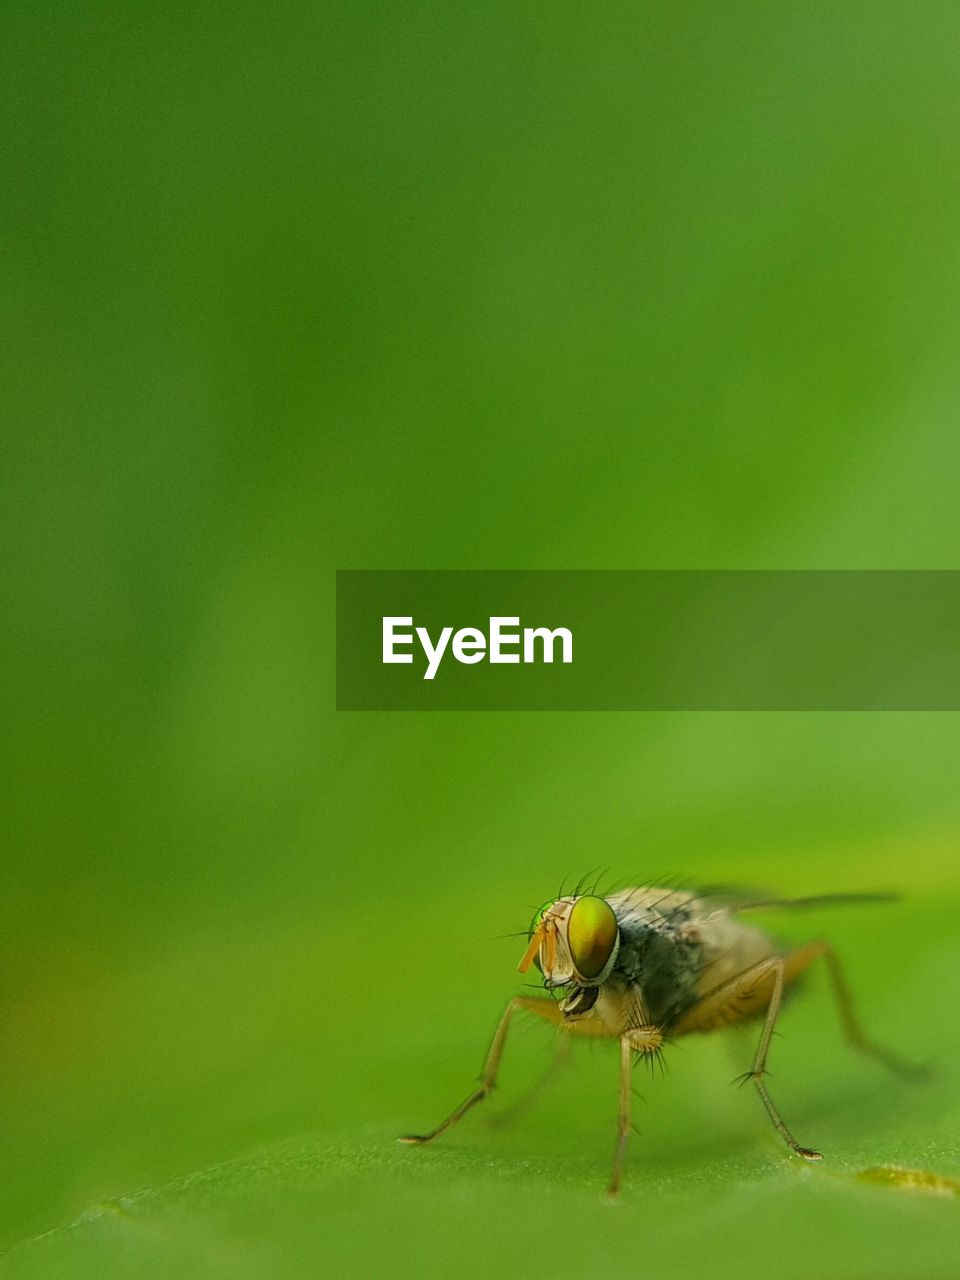 invertebrate, insect, animal themes, one animal, animal, animal wildlife, animals in the wild, close-up, no people, copy space, green color, day, arthropod, nature, zoology, outdoors, fly, leaf, plant part, focus on foreground, animal eye